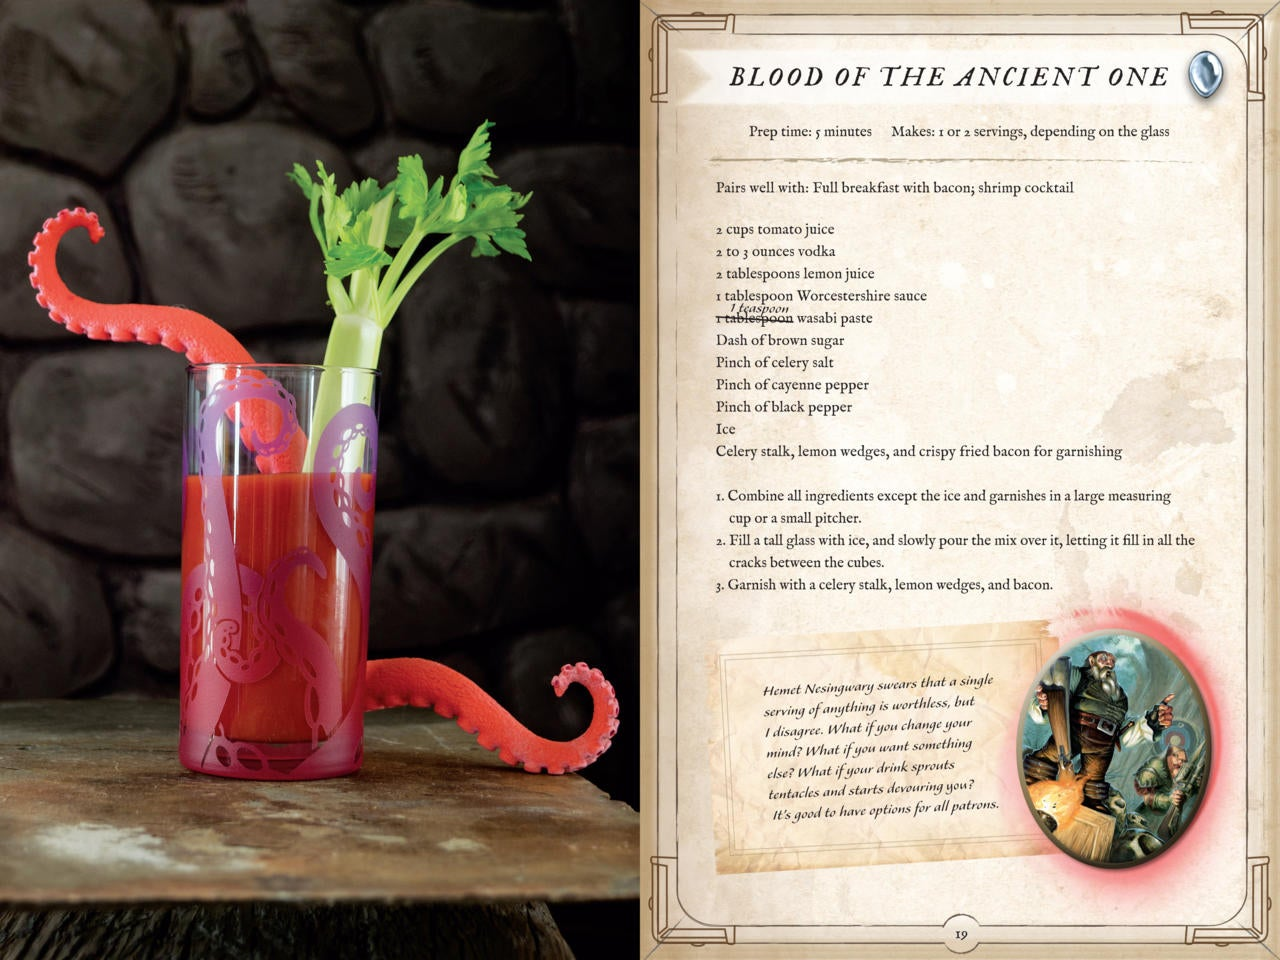 hearthstone-inspired recipes now available